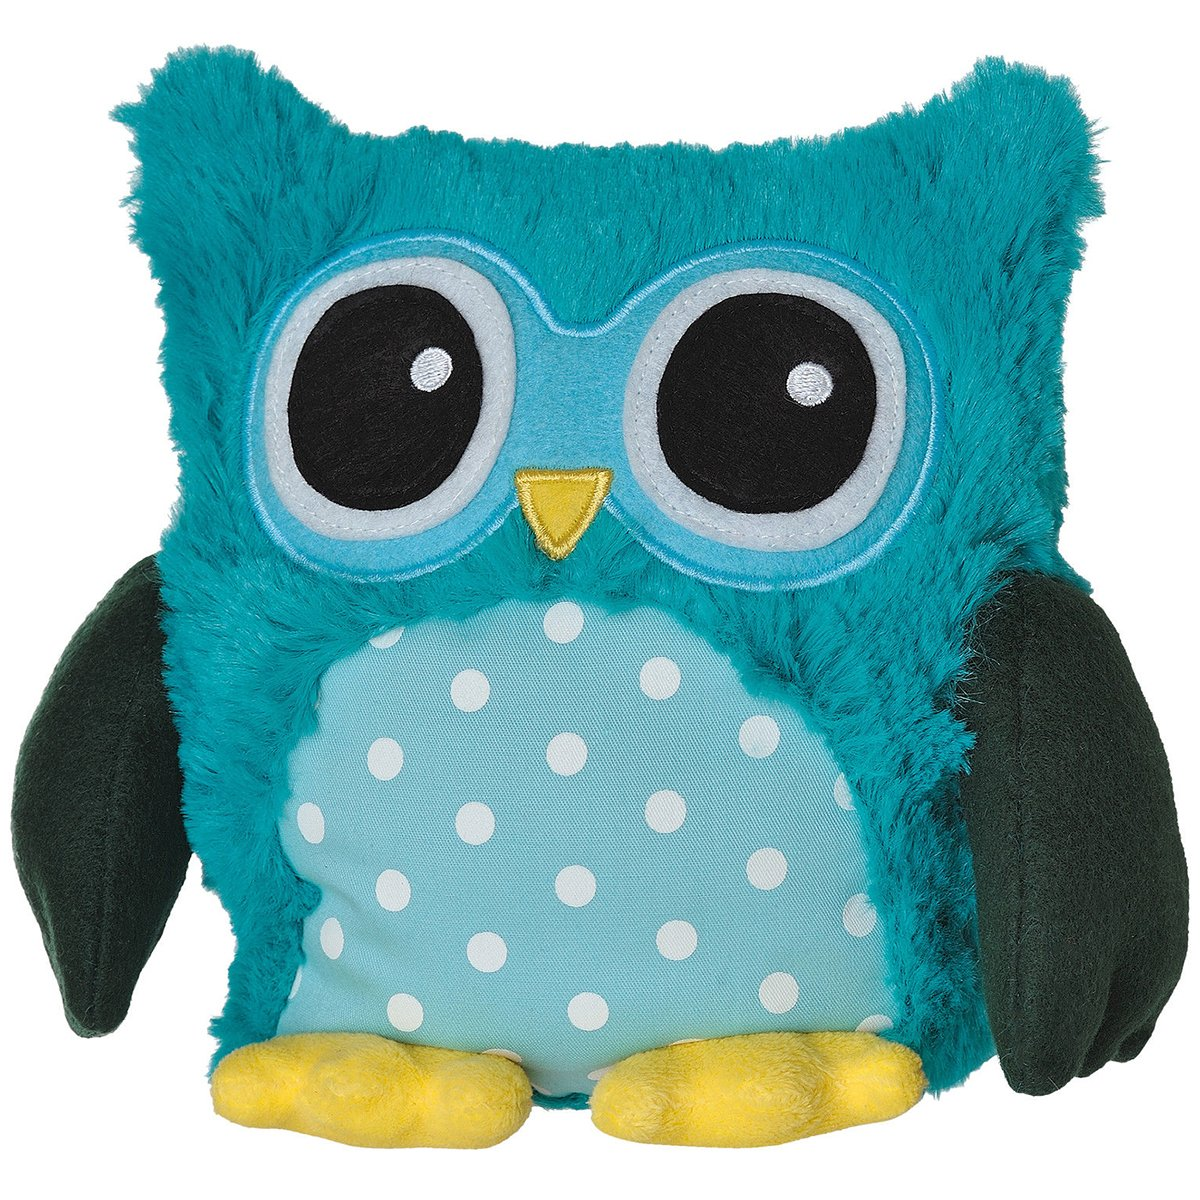 Warmies Pop Owl with Lavender Scent and Removable Filling Turquoise BabyCenter 2228291